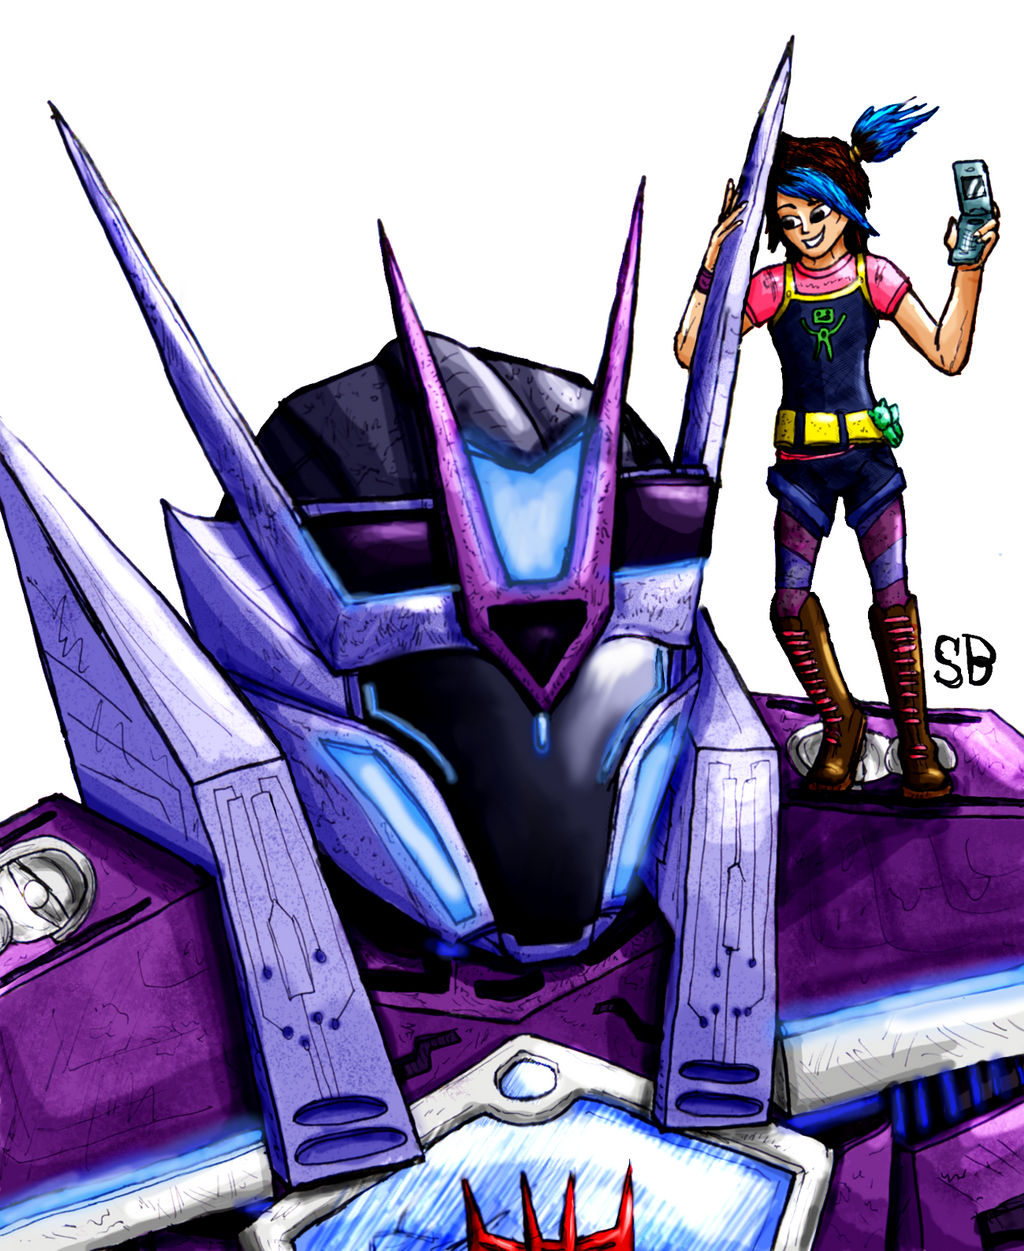 Miko and Soundwave (Shattered Glass) by SoundBluster on